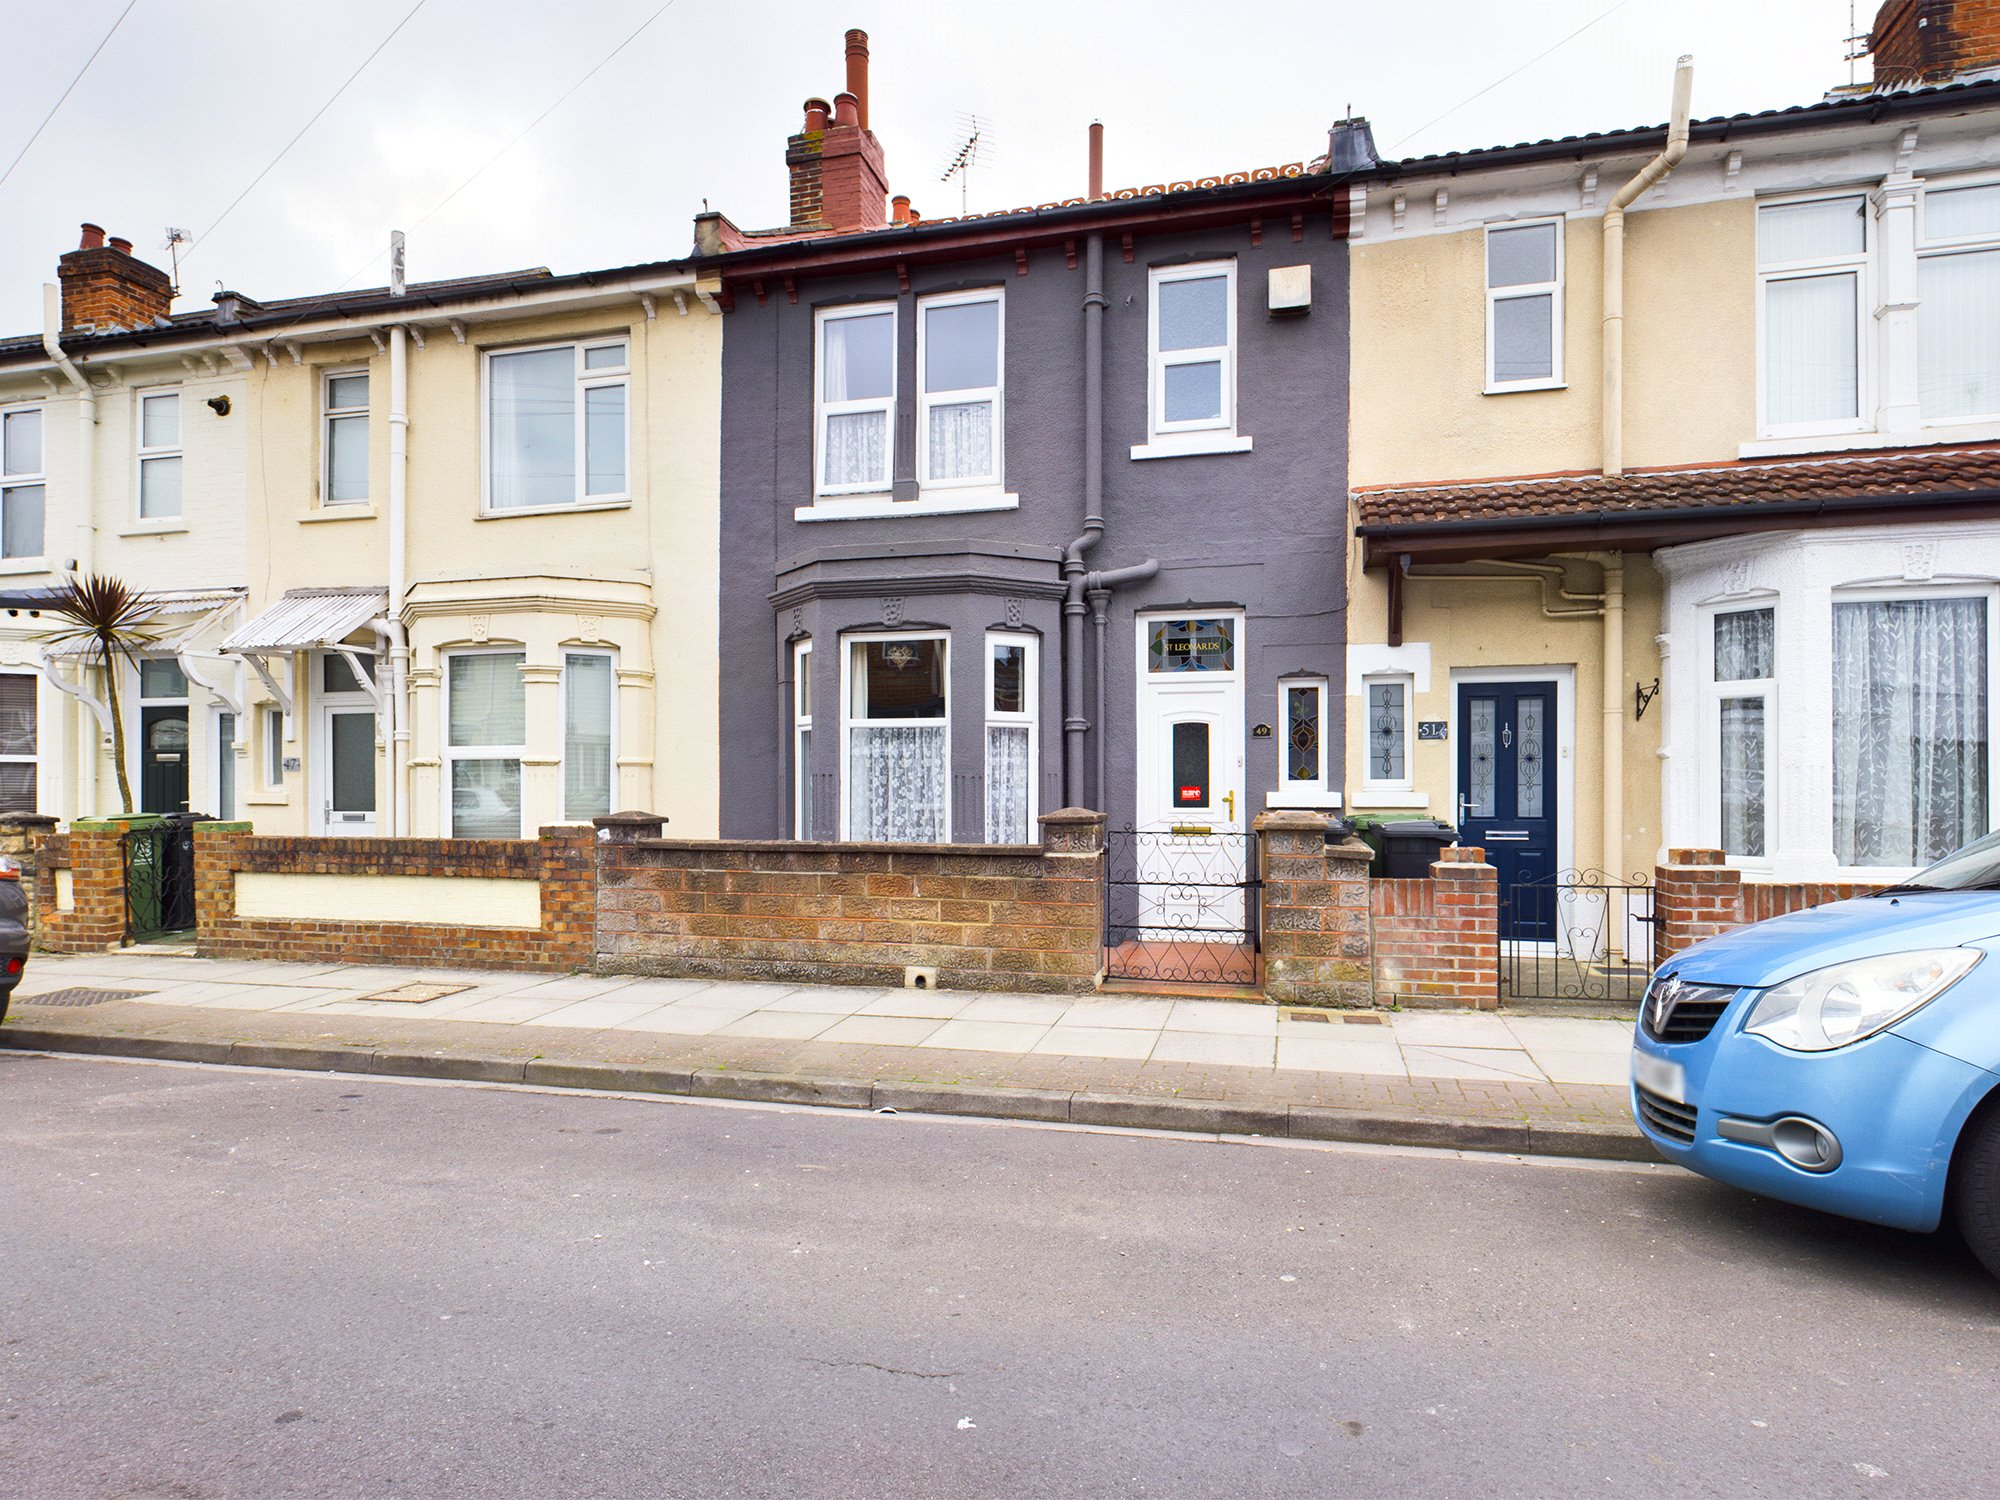 49 Chesterfield Road Image